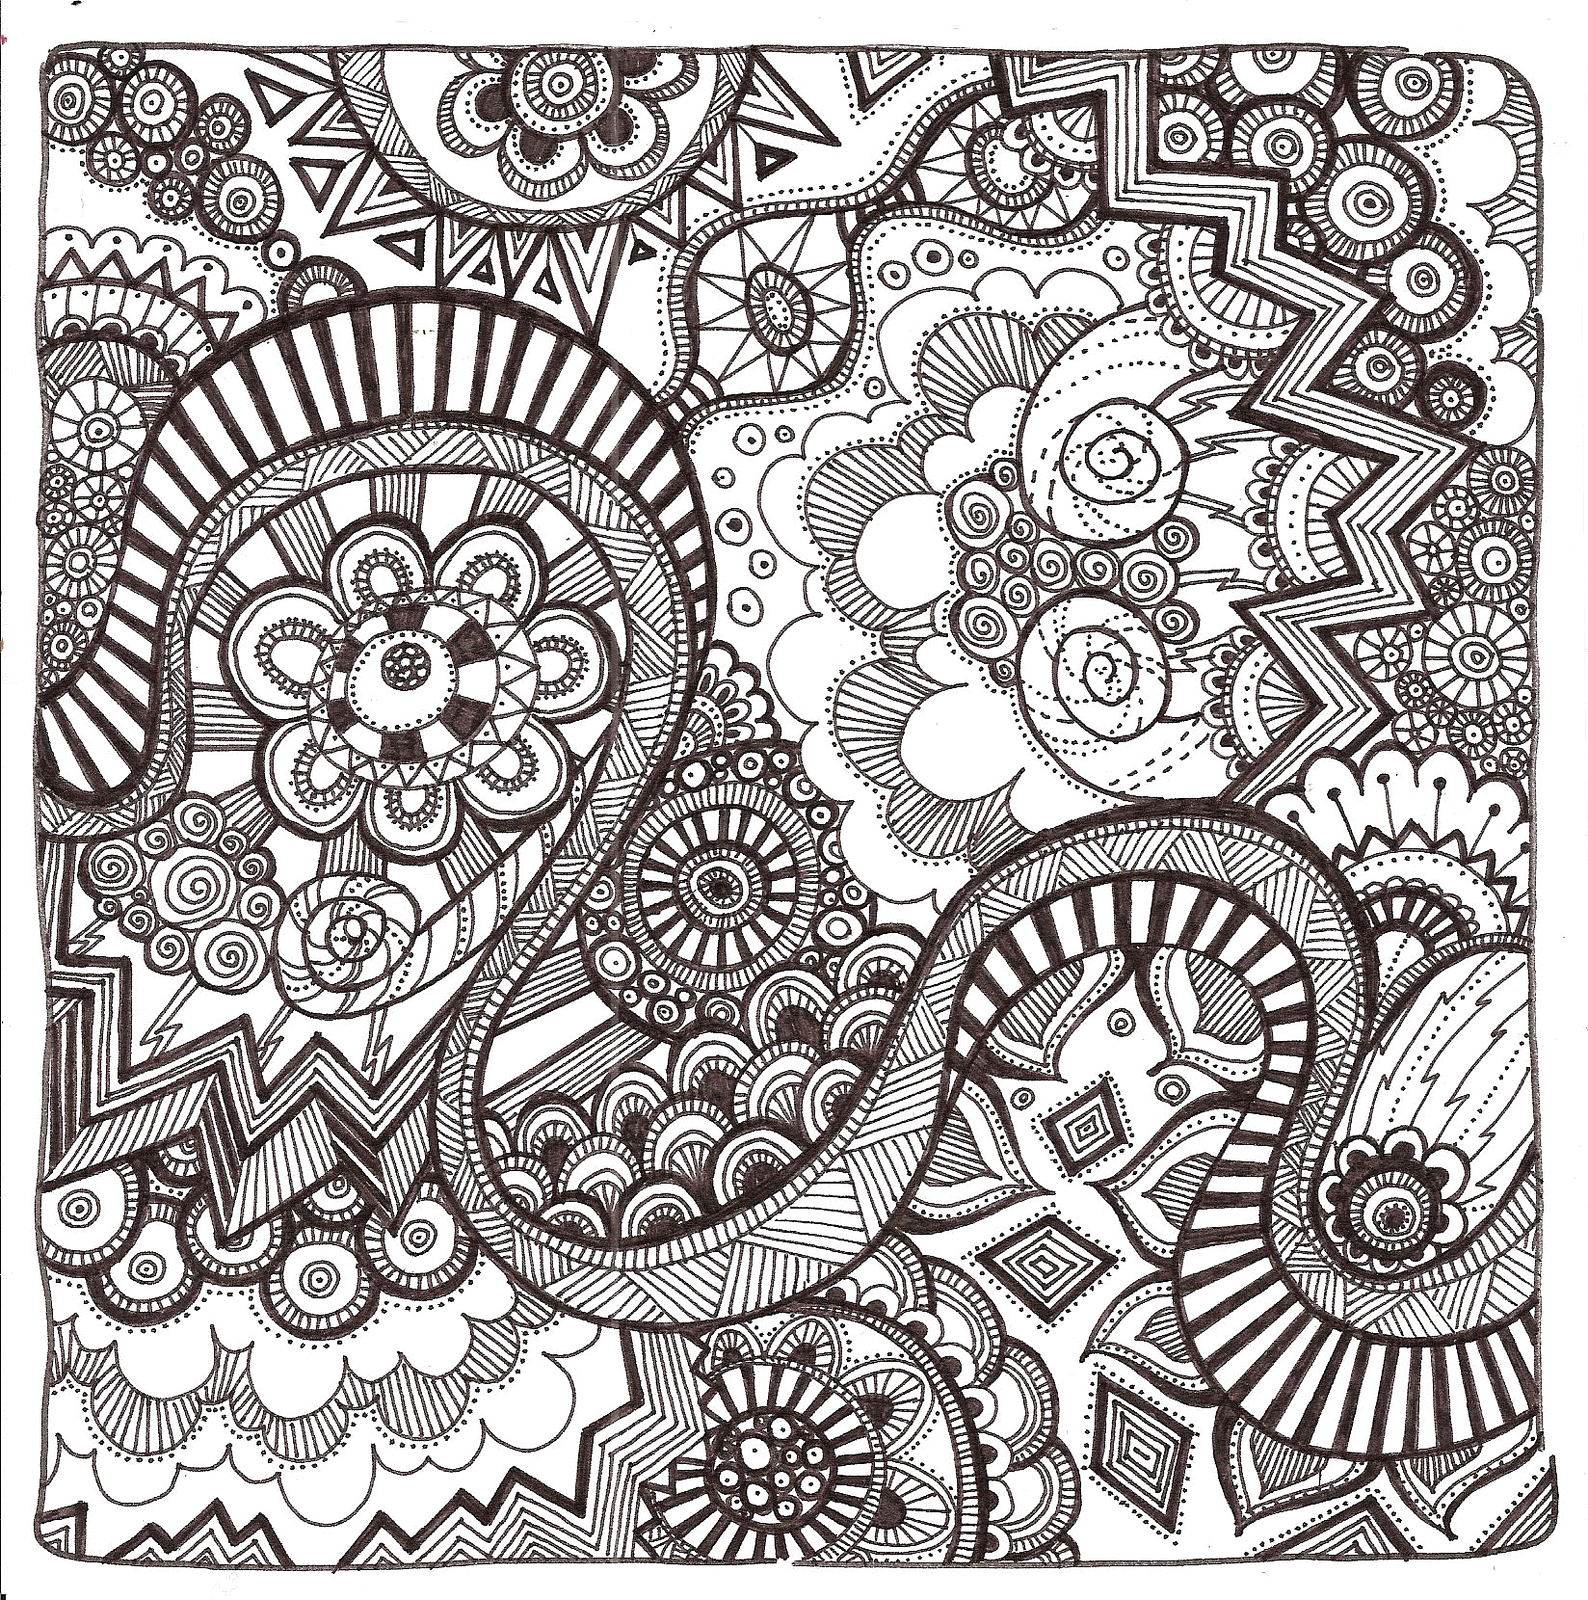 Free Printable Zentangle Coloring Pages for Adults Free Printable Zentangle Coloring Pages for Adults